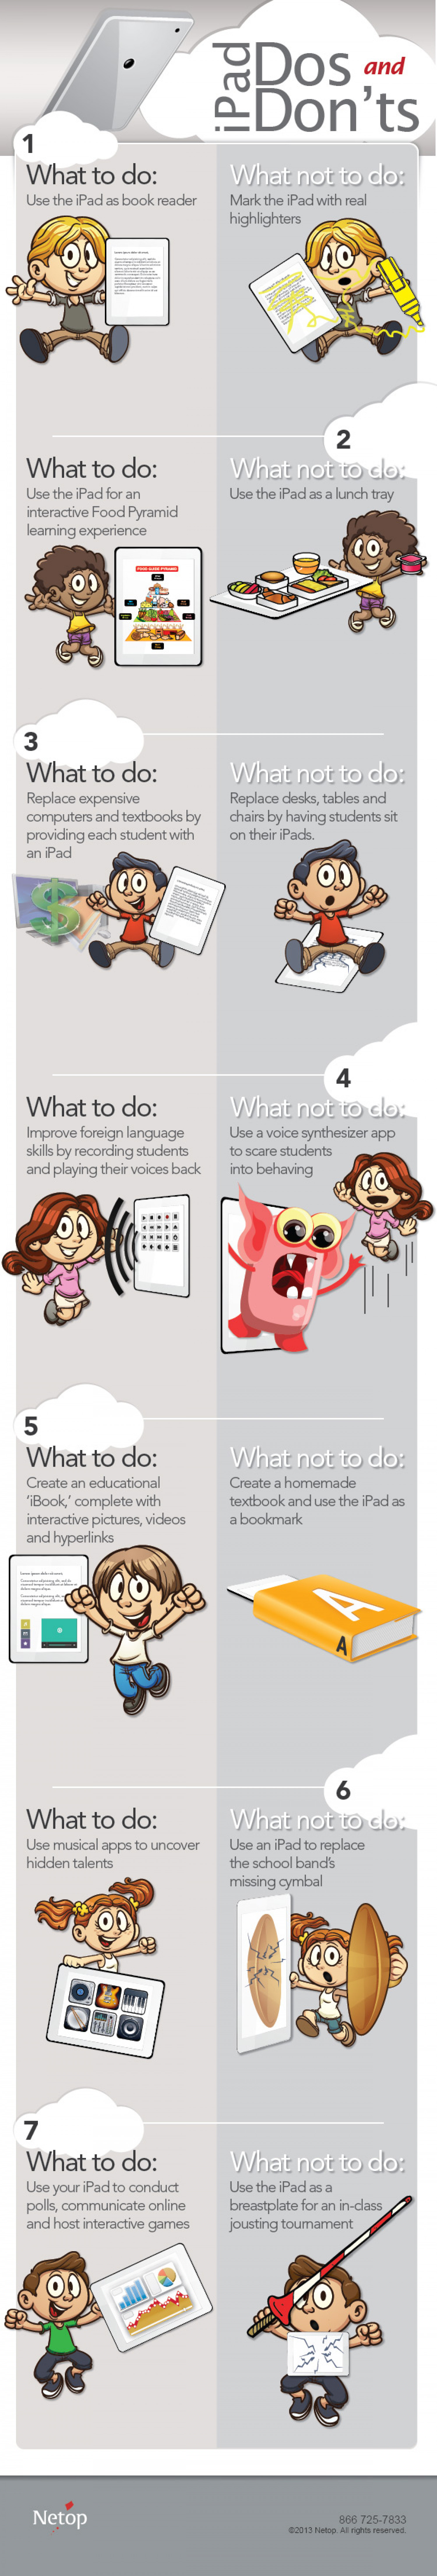 The iPad in Your Classroom: Dos and Don'ts Infographic